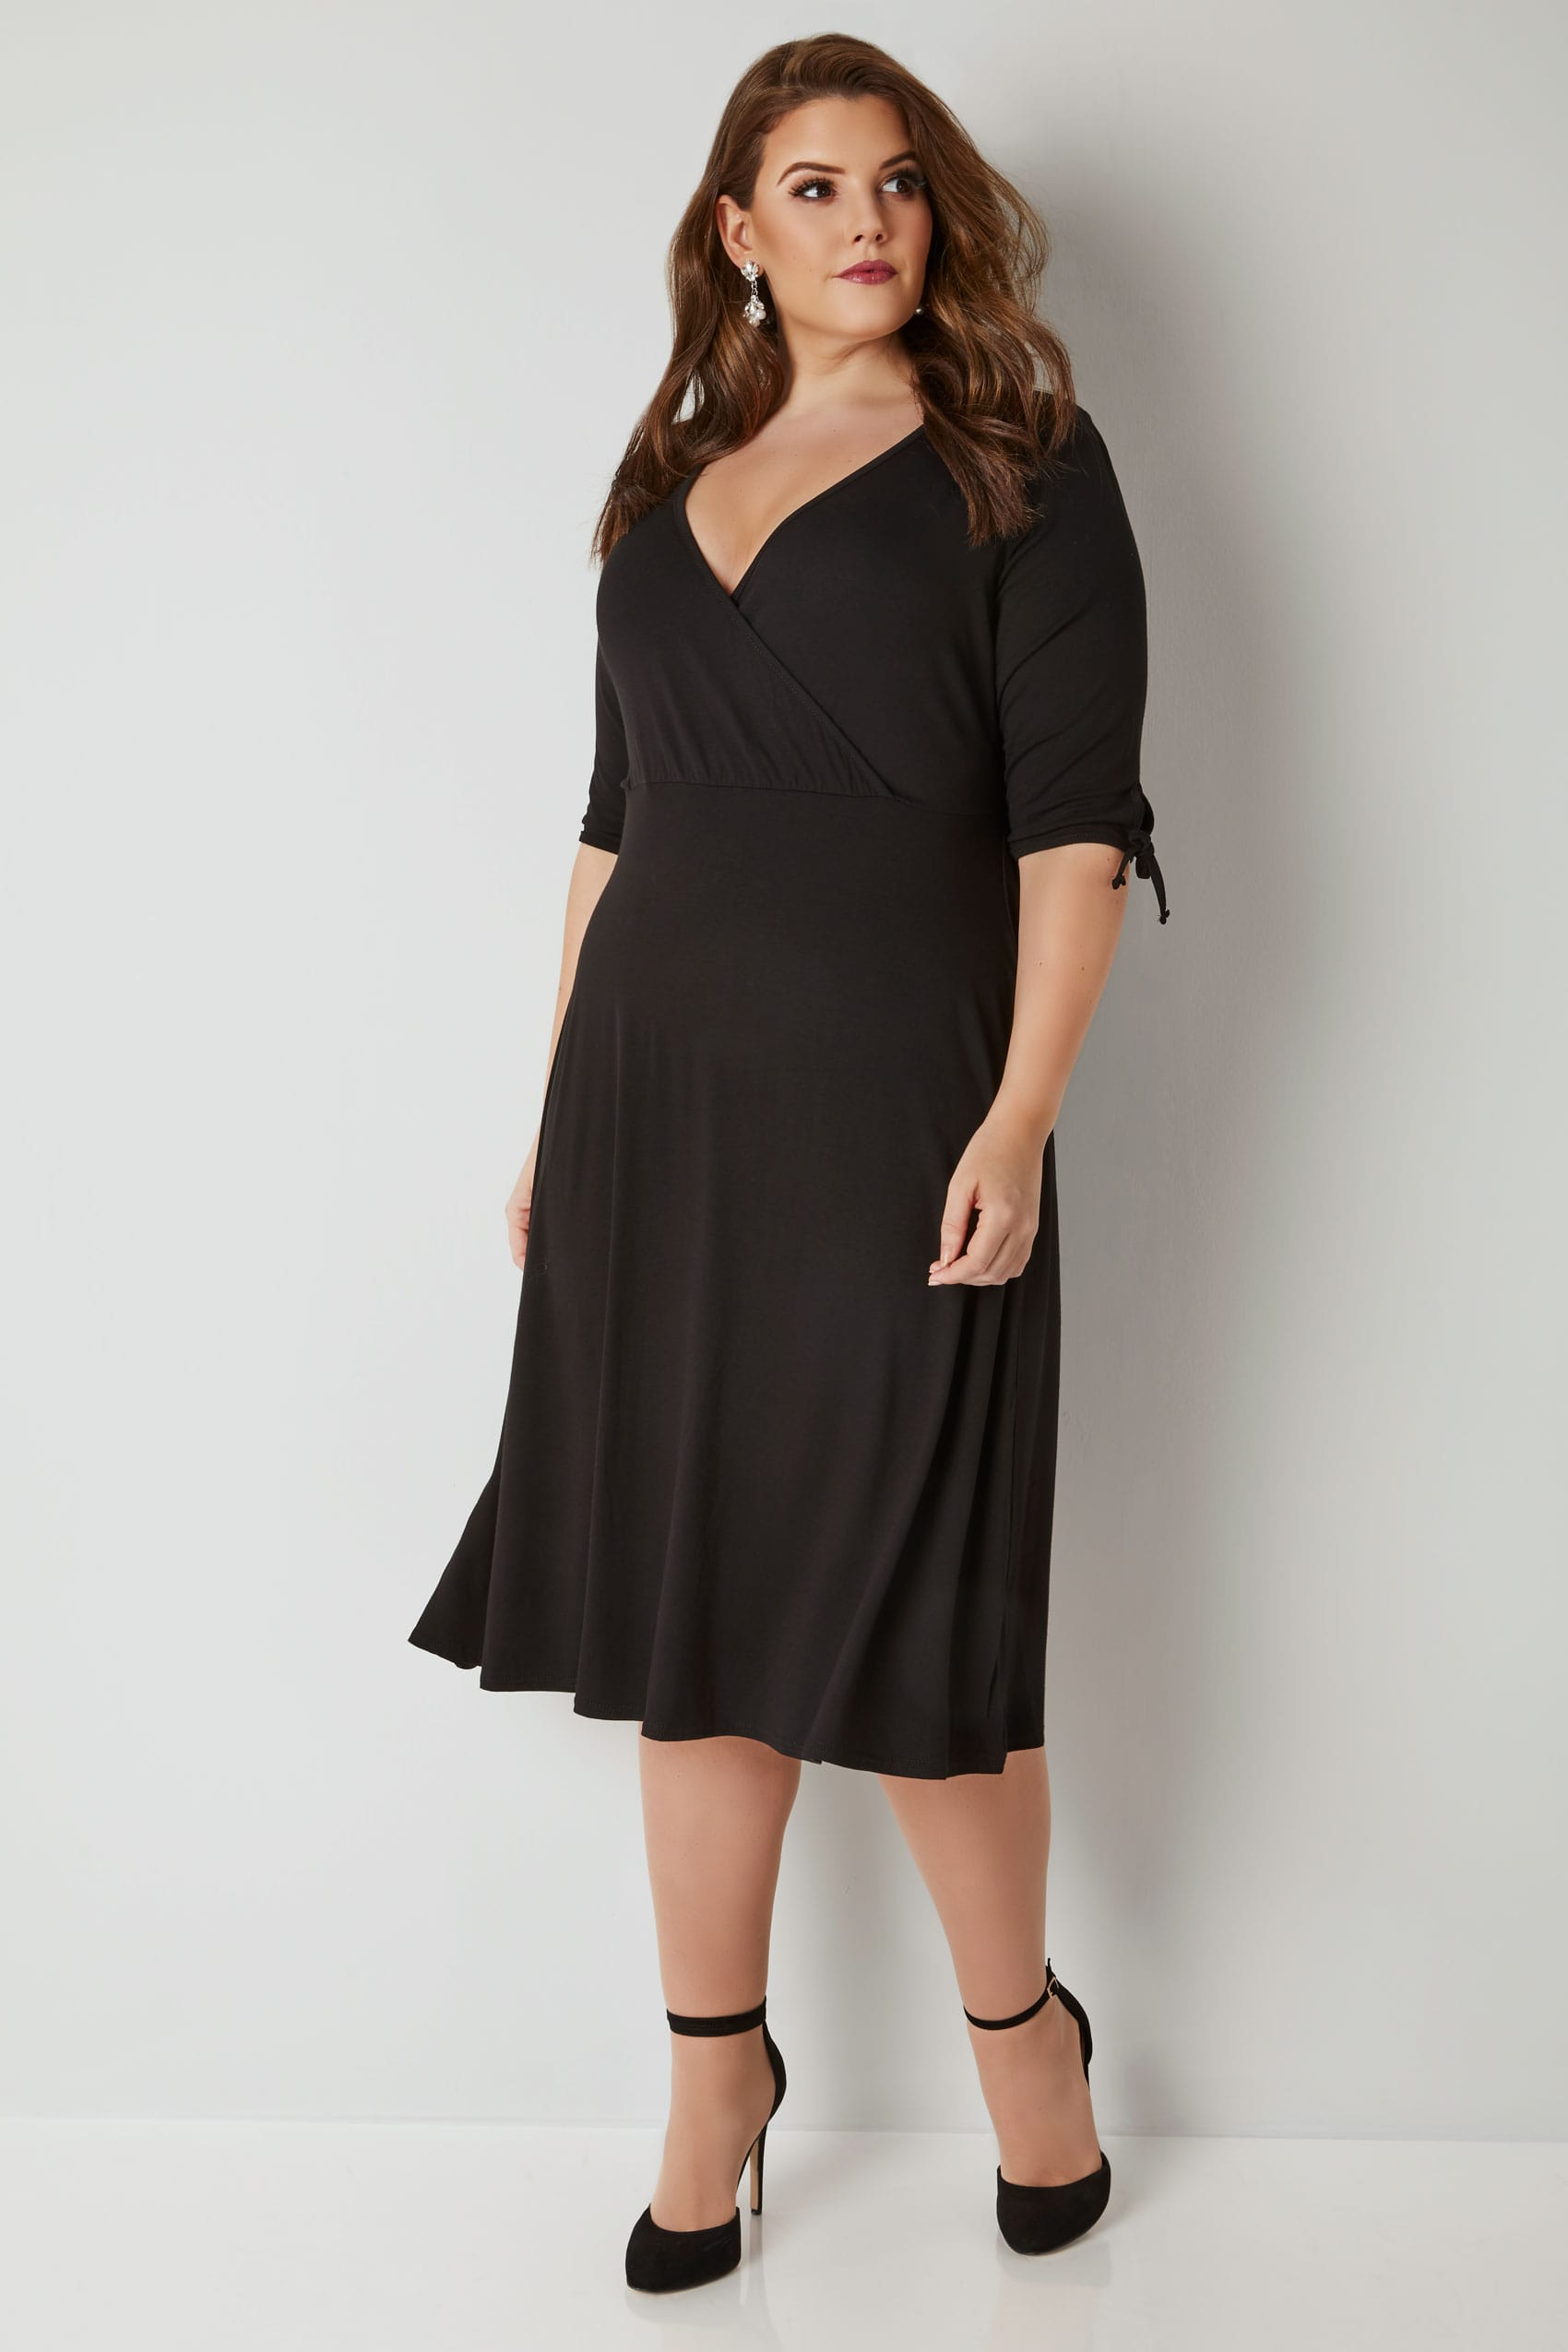 bf2c058235c YOURS LONDON Black Wrap Dress With Tie Sleeves